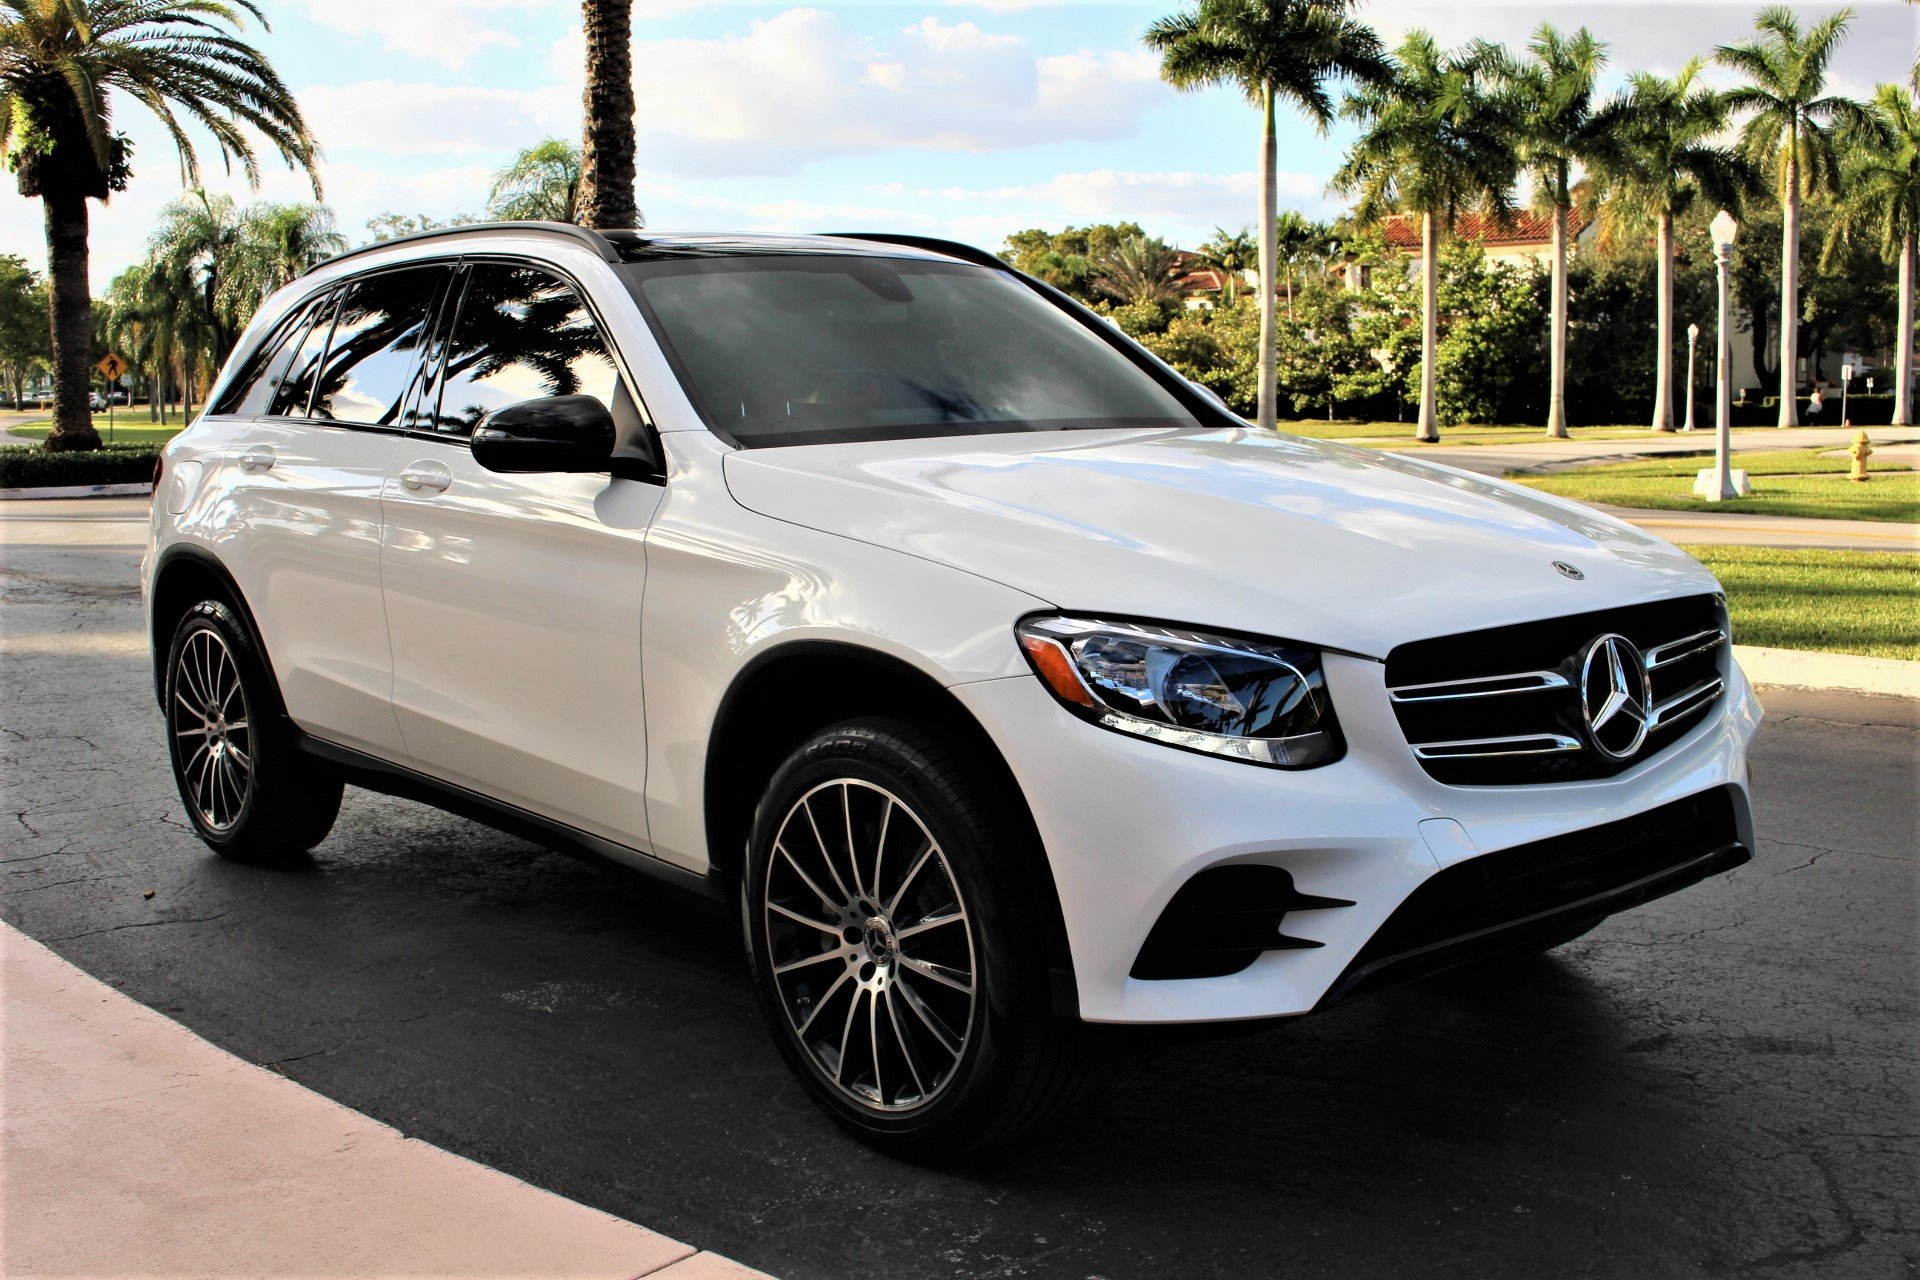 Used 2019 Mercedes-Benz GLC GLC 300 for sale $36,850 at The Gables Sports Cars in Miami FL 33146 3